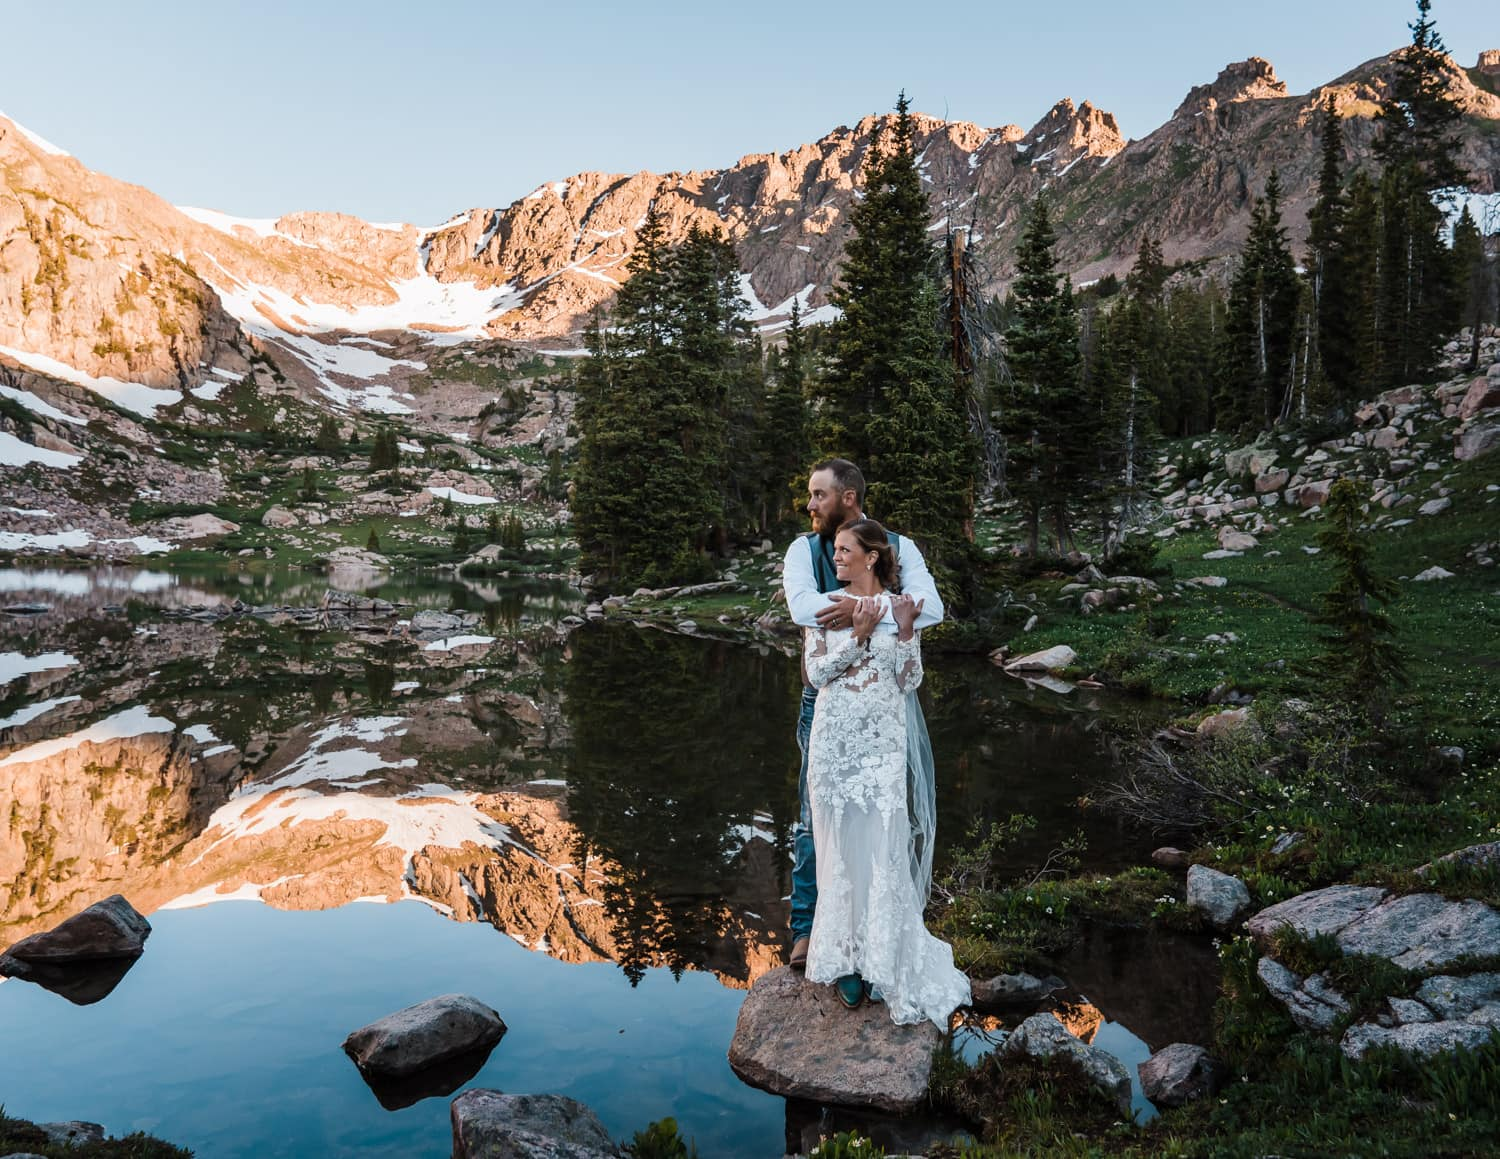 Bride and Groom Lakeside Backpacking Wedding Elopement